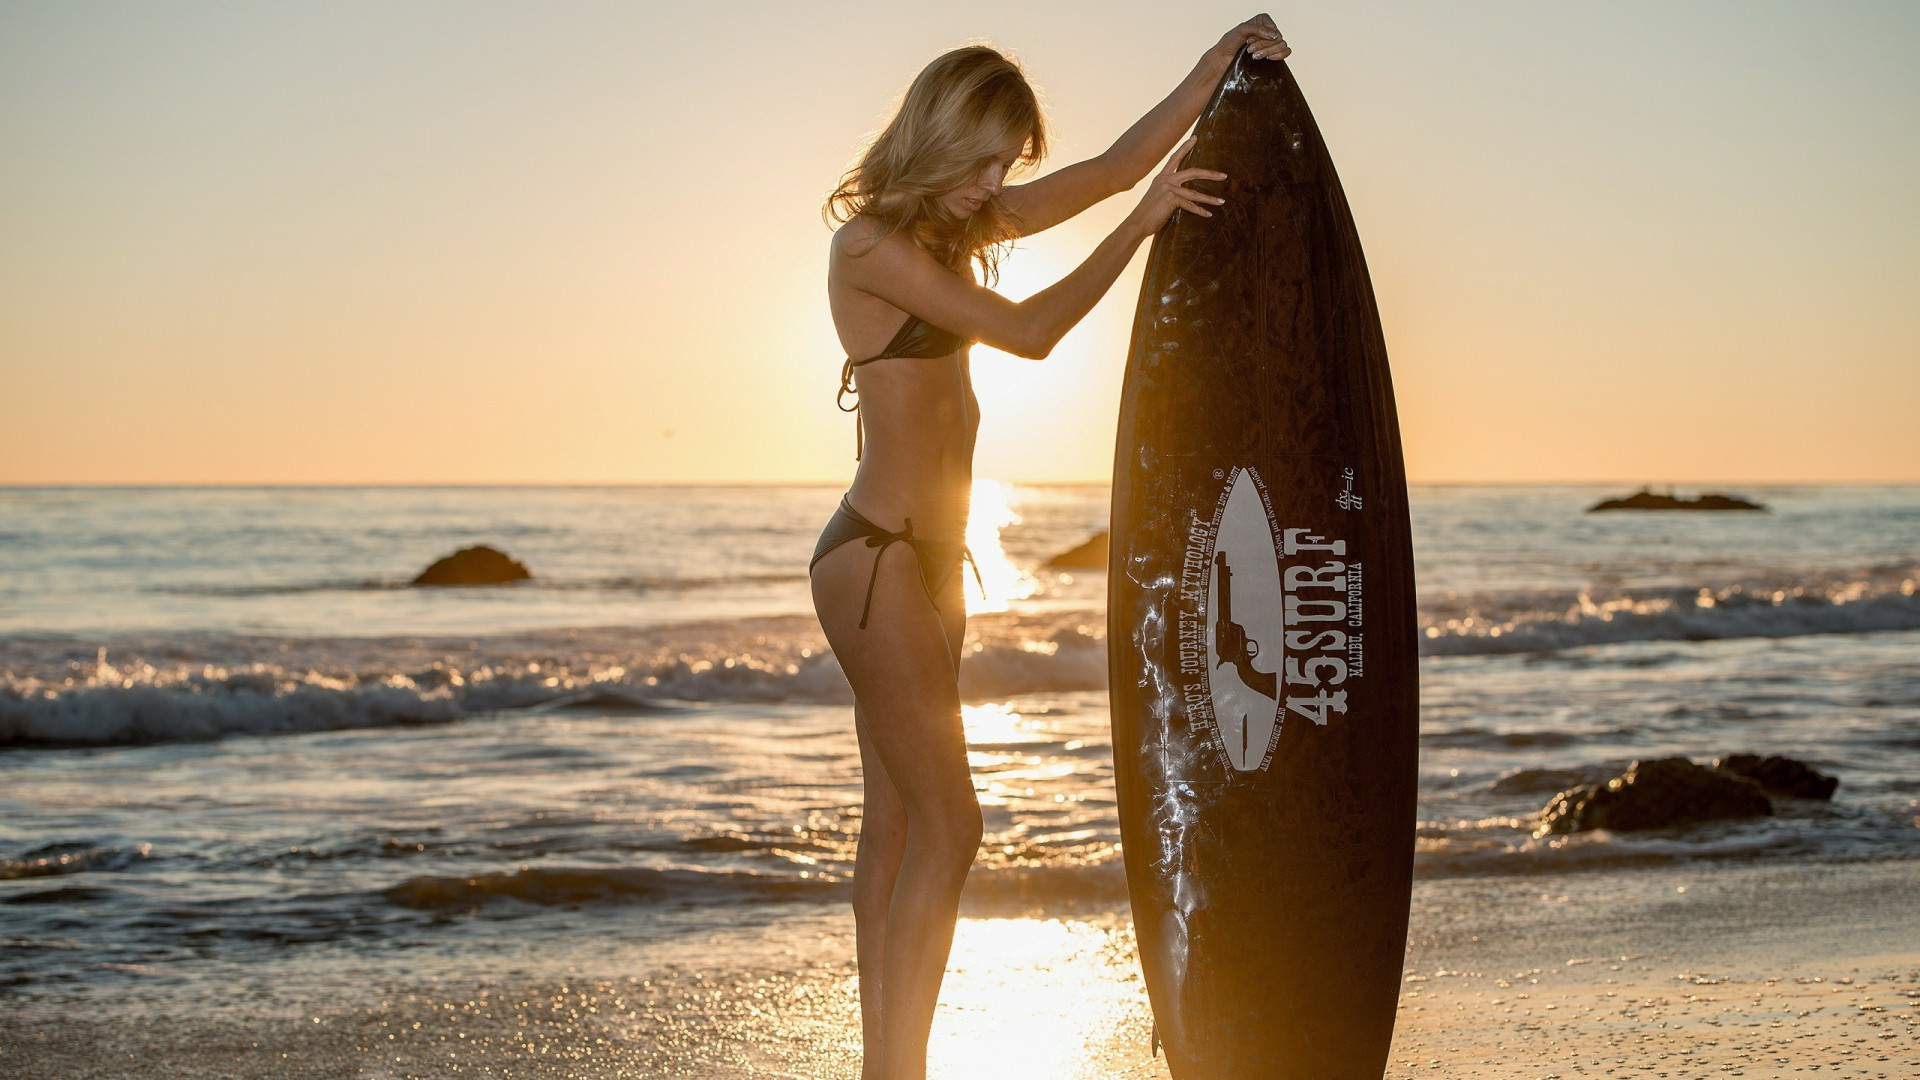 Res: 1920x1080, Girl with surfboard